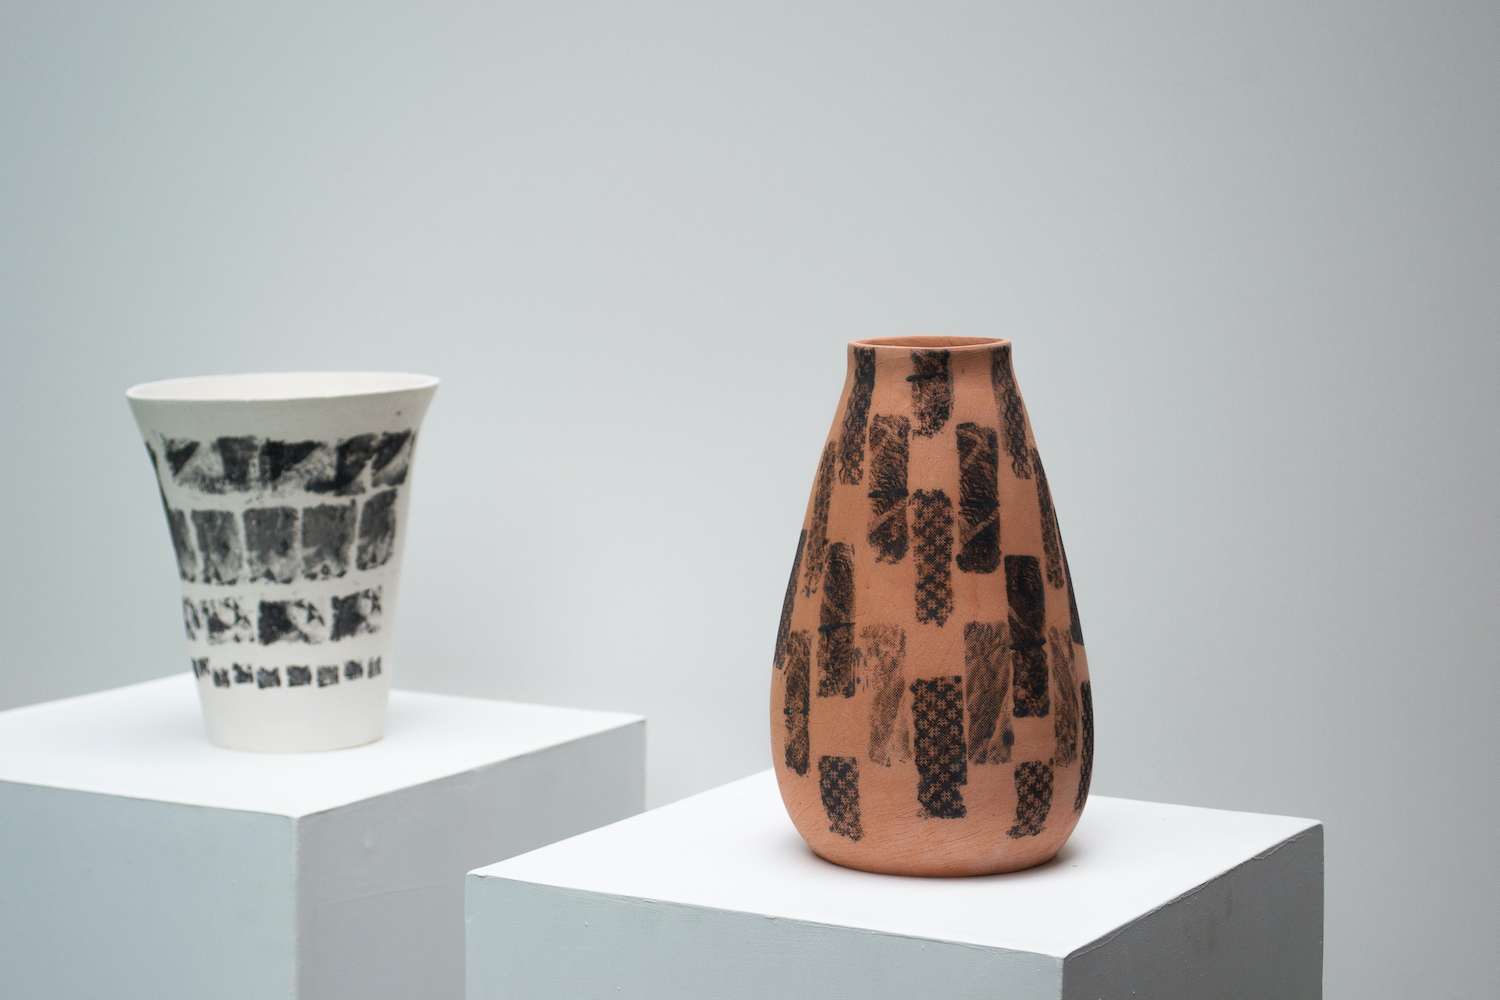 Hannah deJonge / Binding Rows and Ripped Fragments (Detail) - Screen-printed underglaze on stoneware 2020